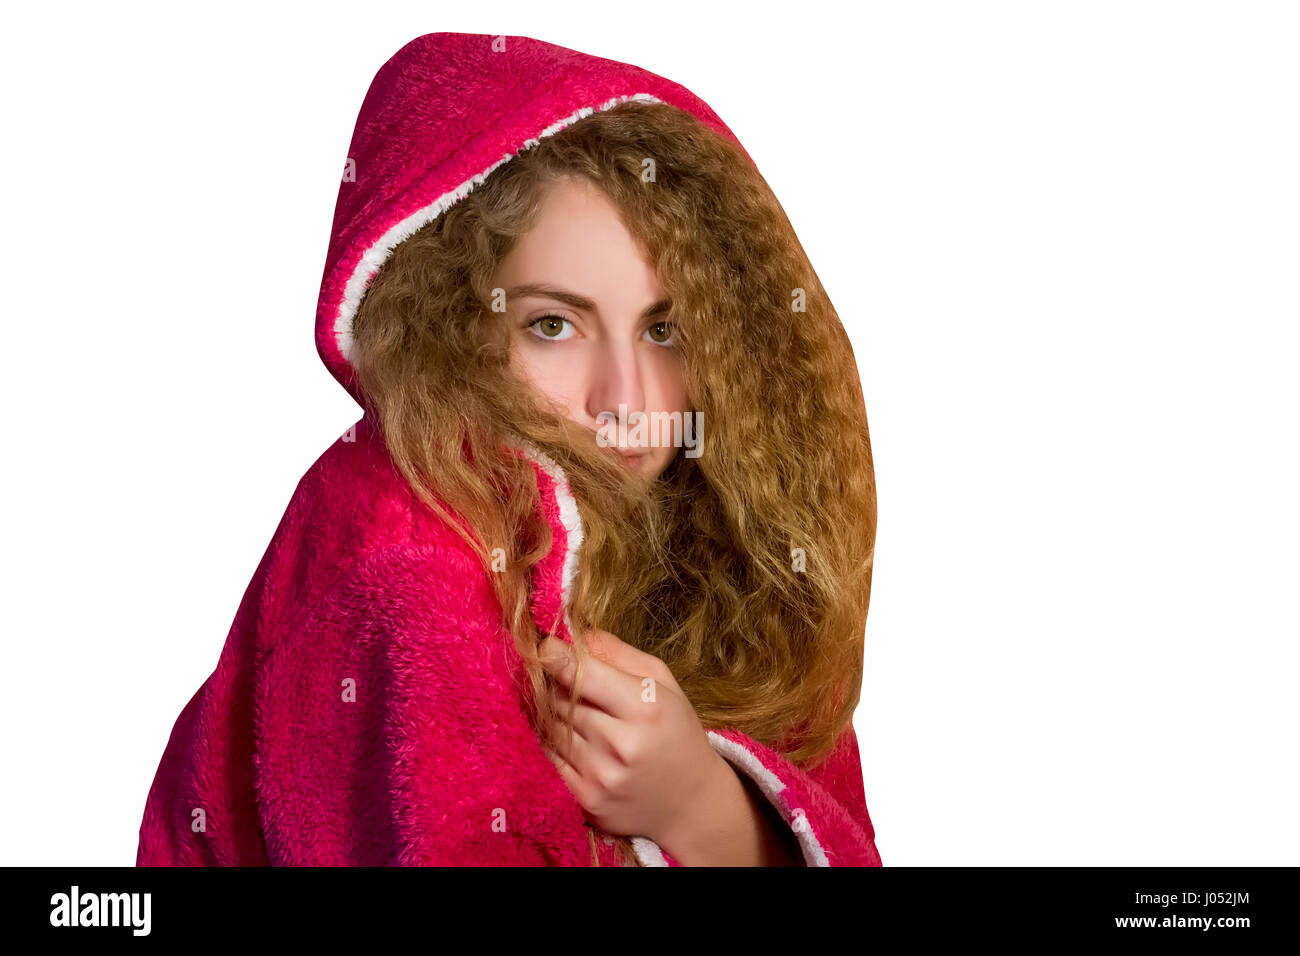 Beautiful blond haired green eyed  woman wearing a pink toweling robe - Stock Image